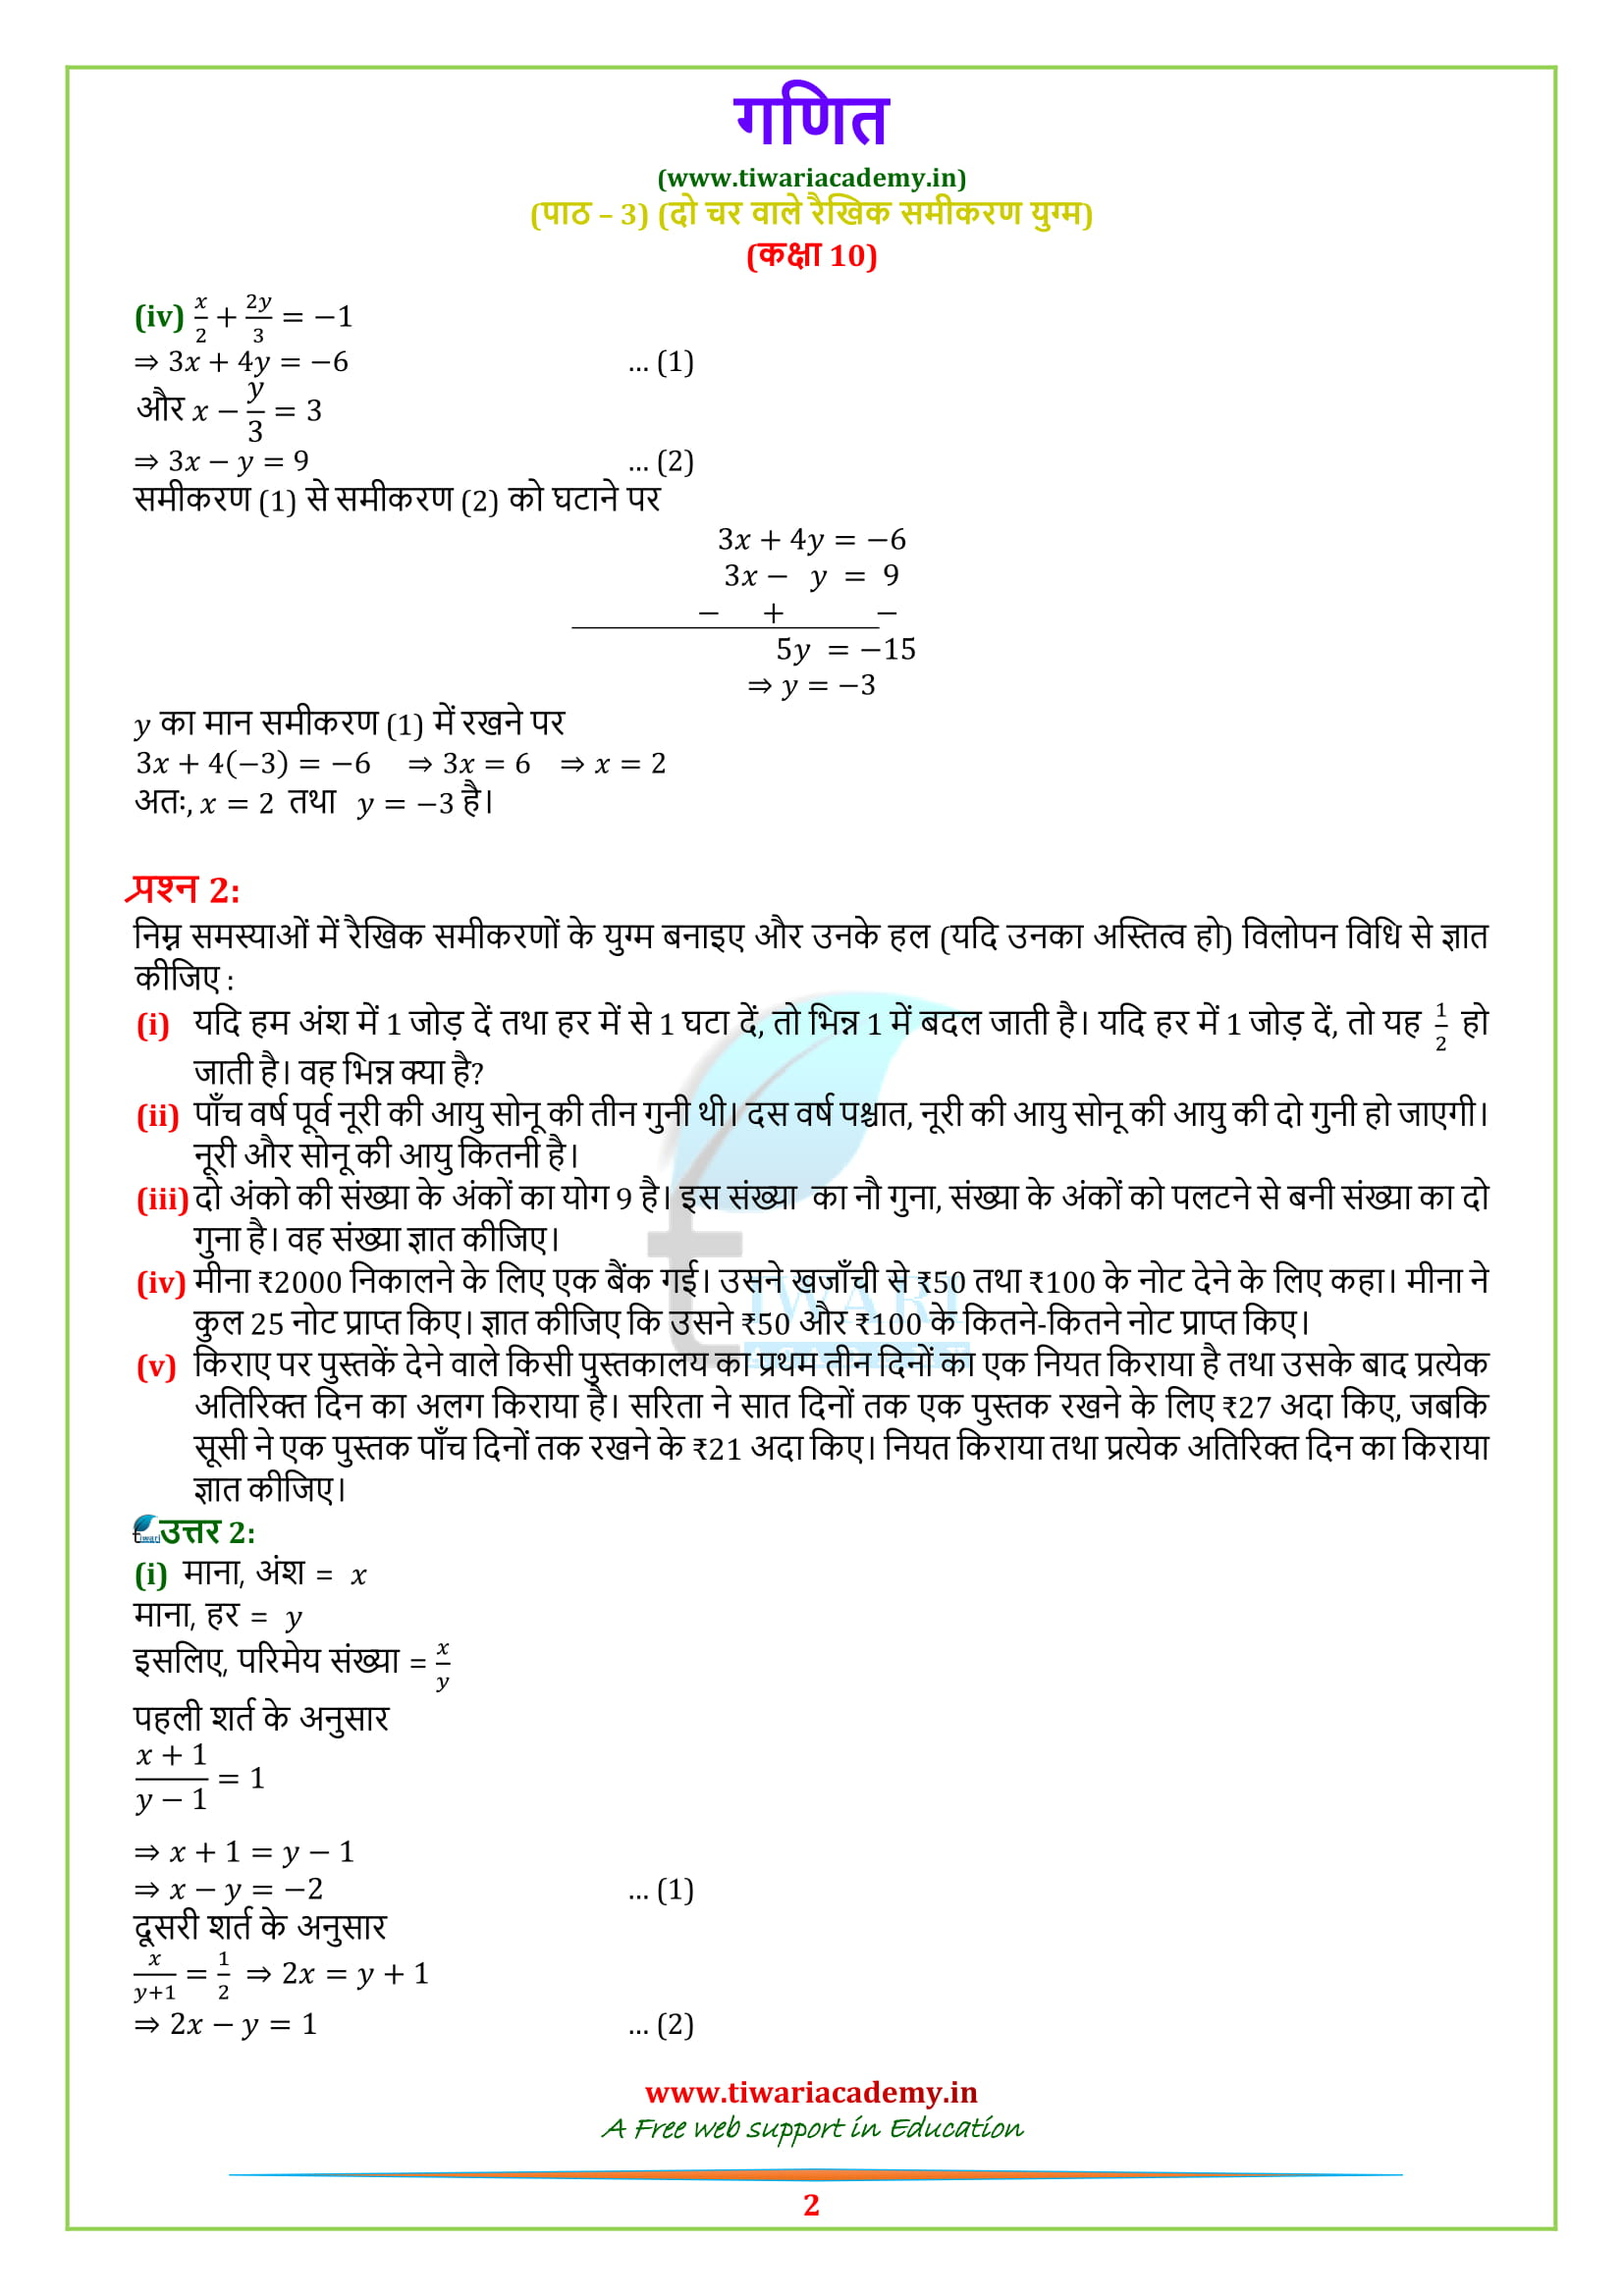 Class 10 Maths Exercise 3.4 in hindi medium for 2018-19.